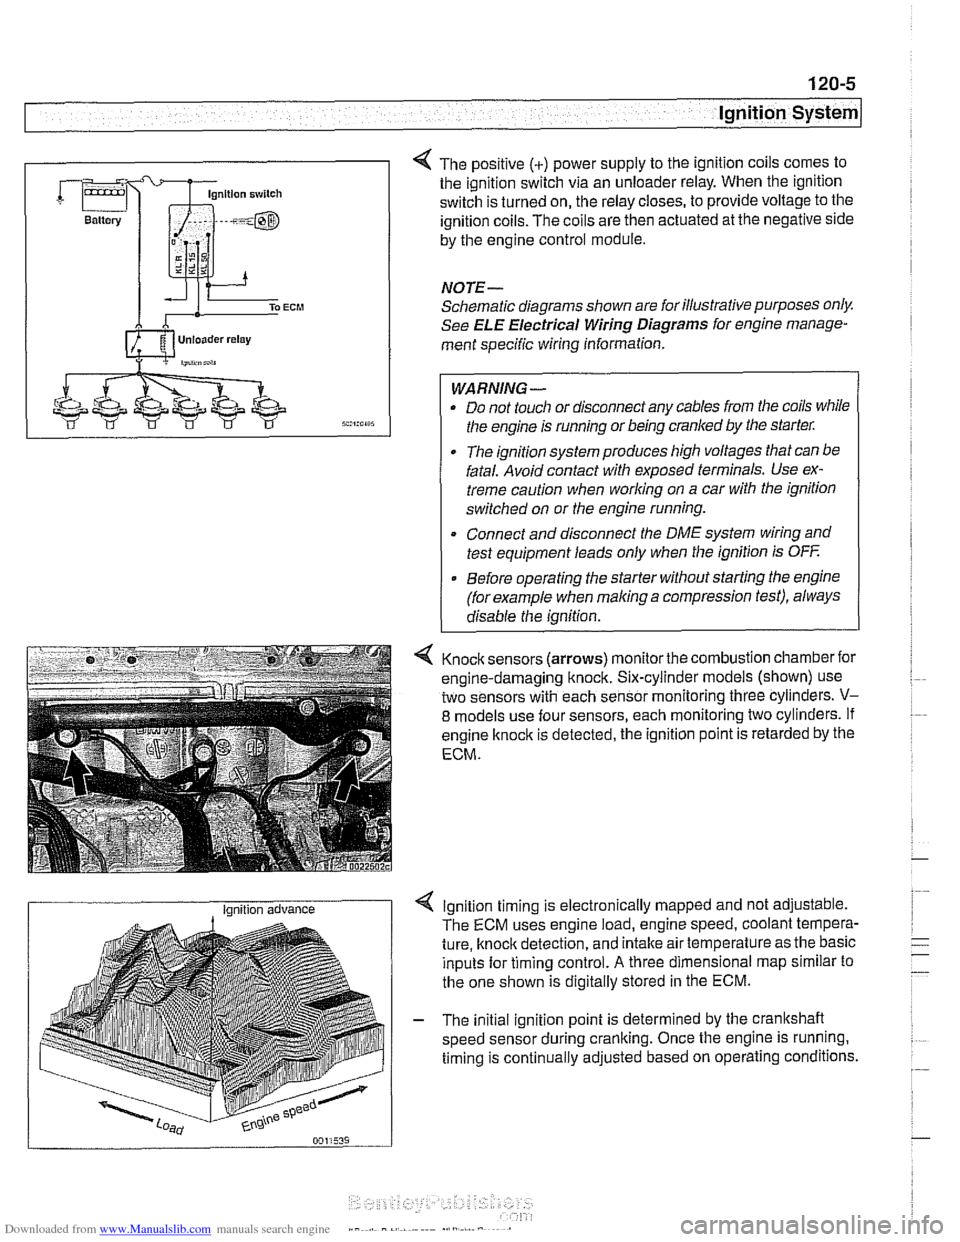 Old Fashioned Clarion Dxz275mp Wiring Diagram Inspiration - The Wire ...